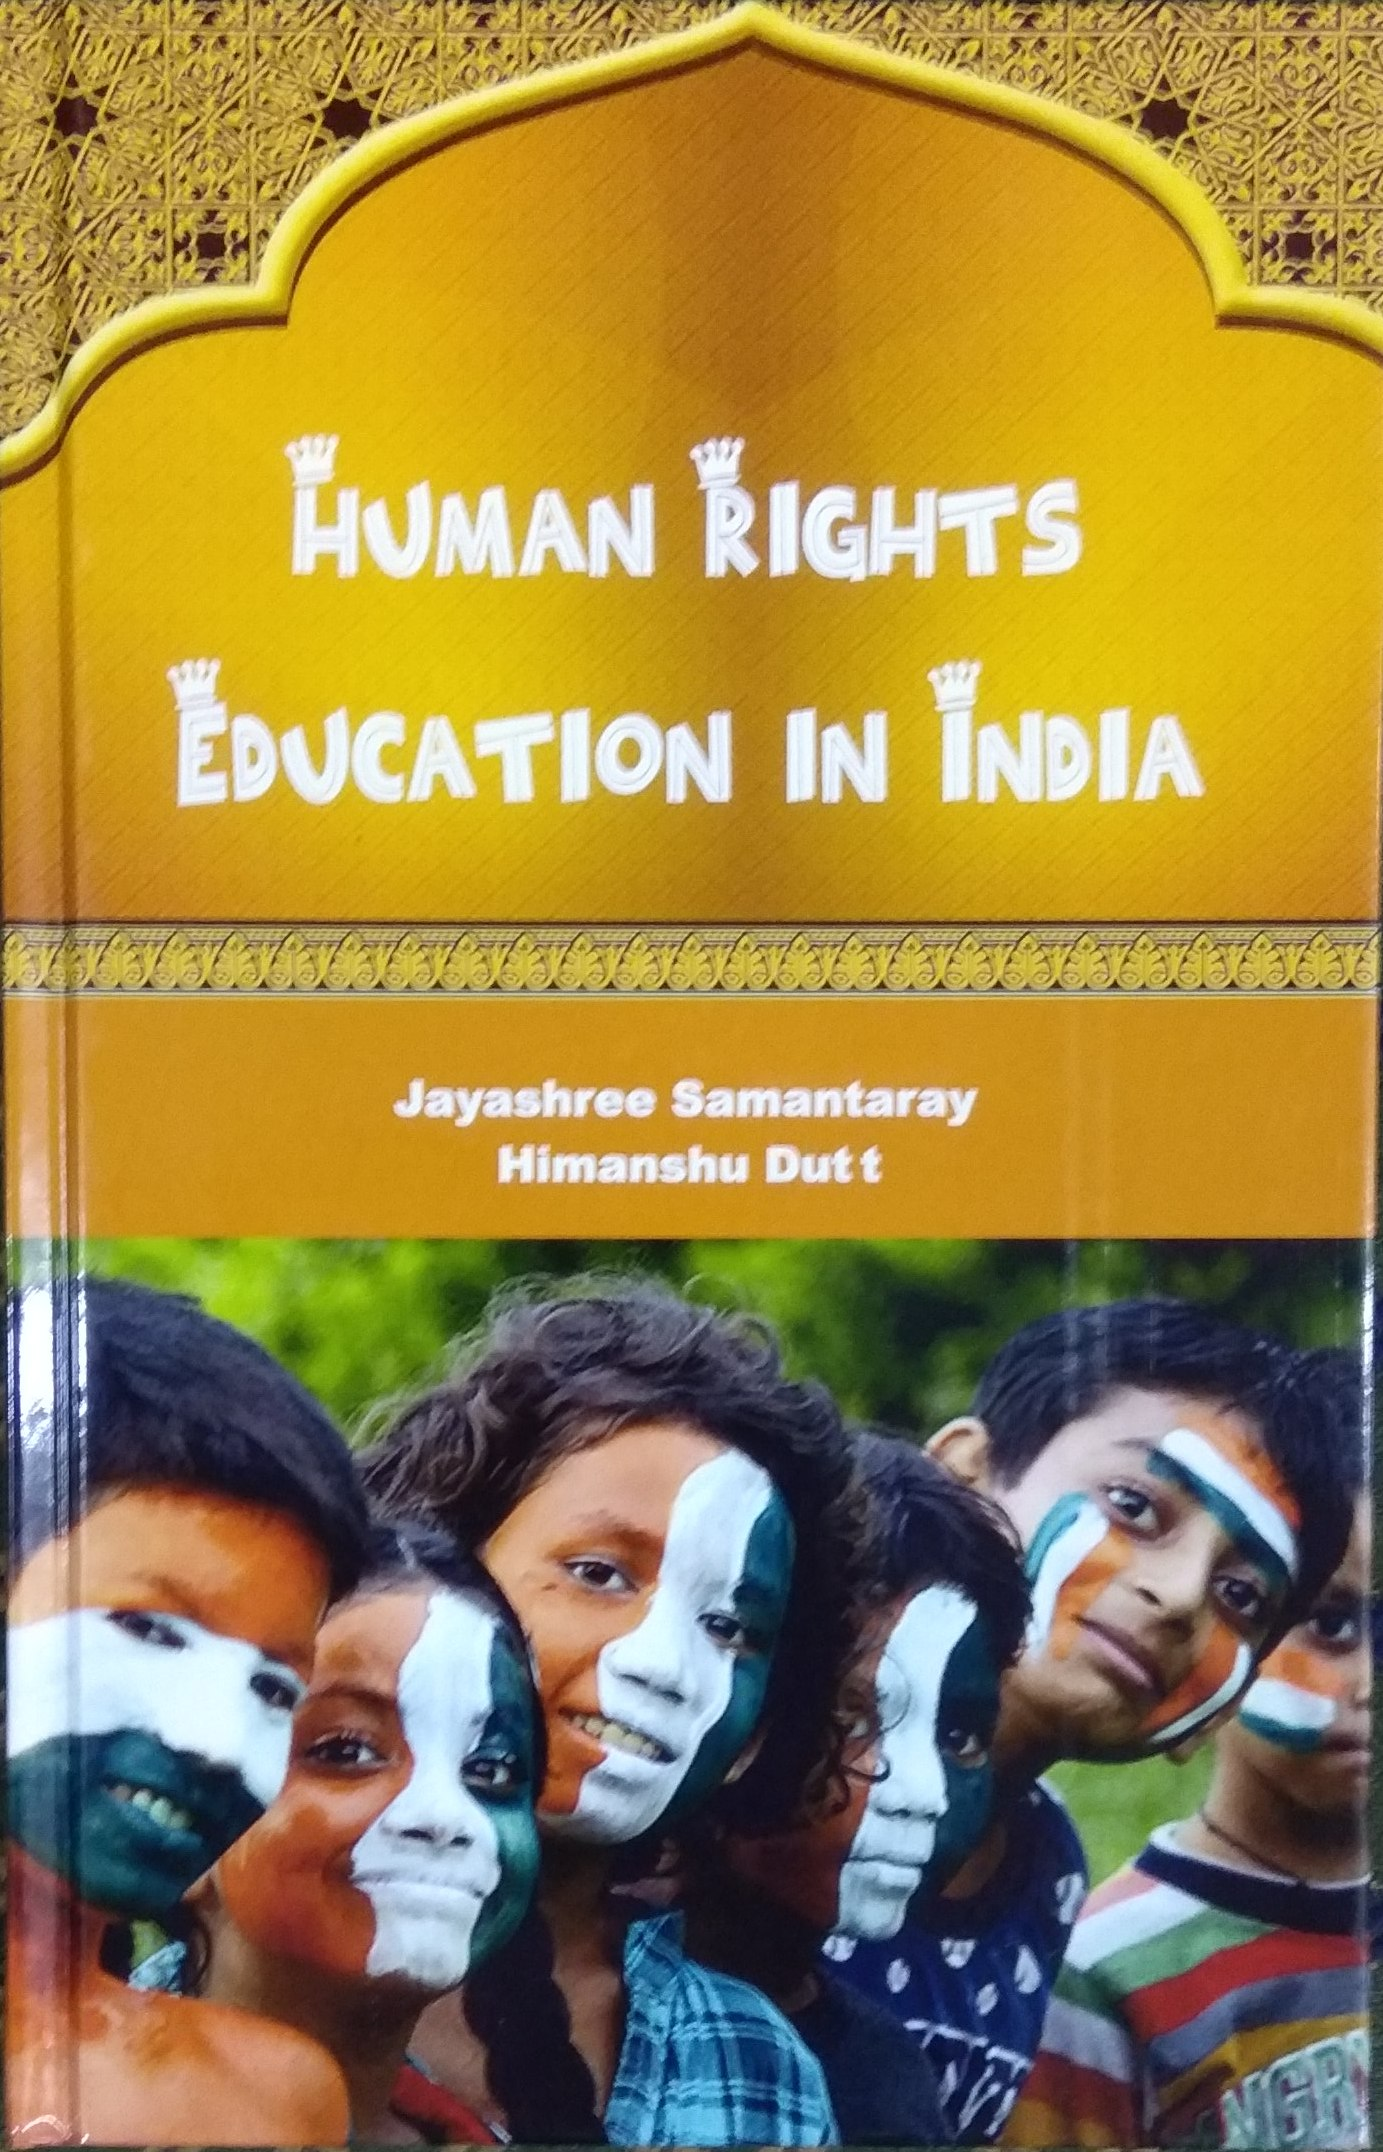 Human Rights Education in India